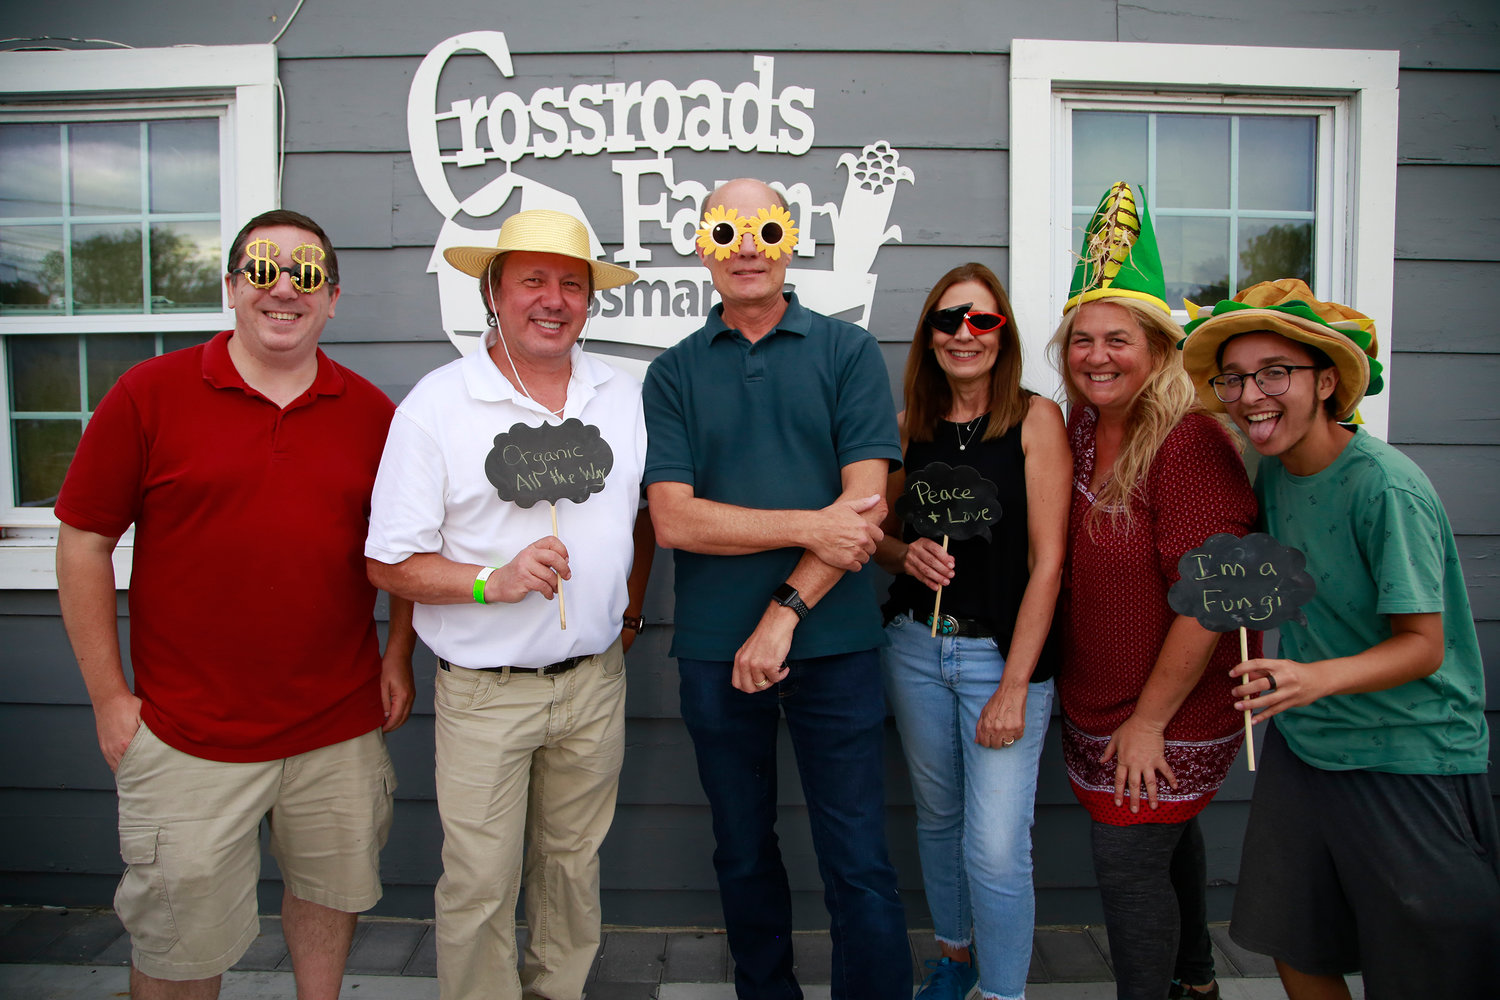 Crossroads Farm members, from left, Steve Brosnittan, Hall Schwartz, Rick White, Judi Consigli, Eva Schwartz and Ray Pisacane hosted the L.I. Food & Drink Sampling Event fundraiser in Malverne on Aug. 23.